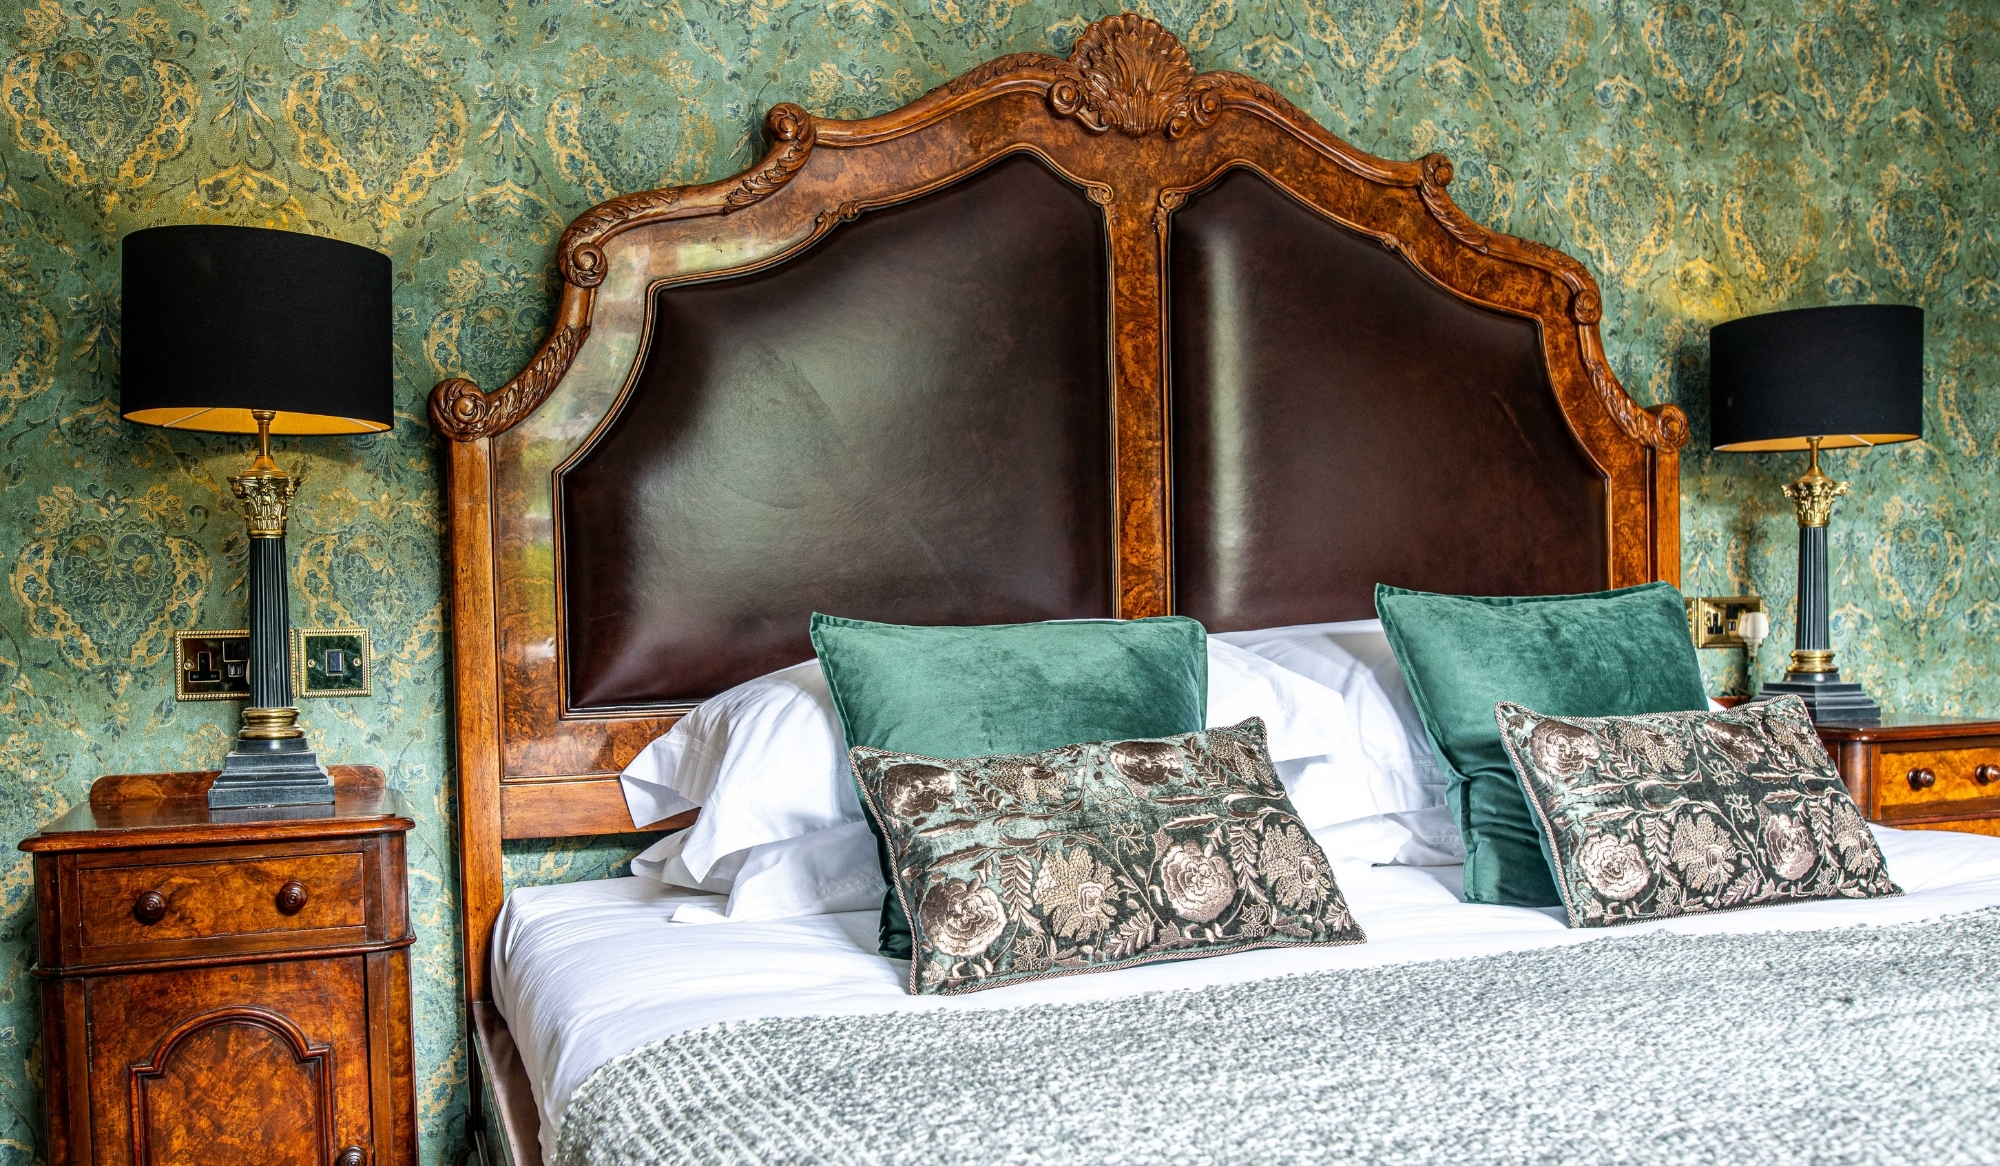 Superior Room at Melville Castle